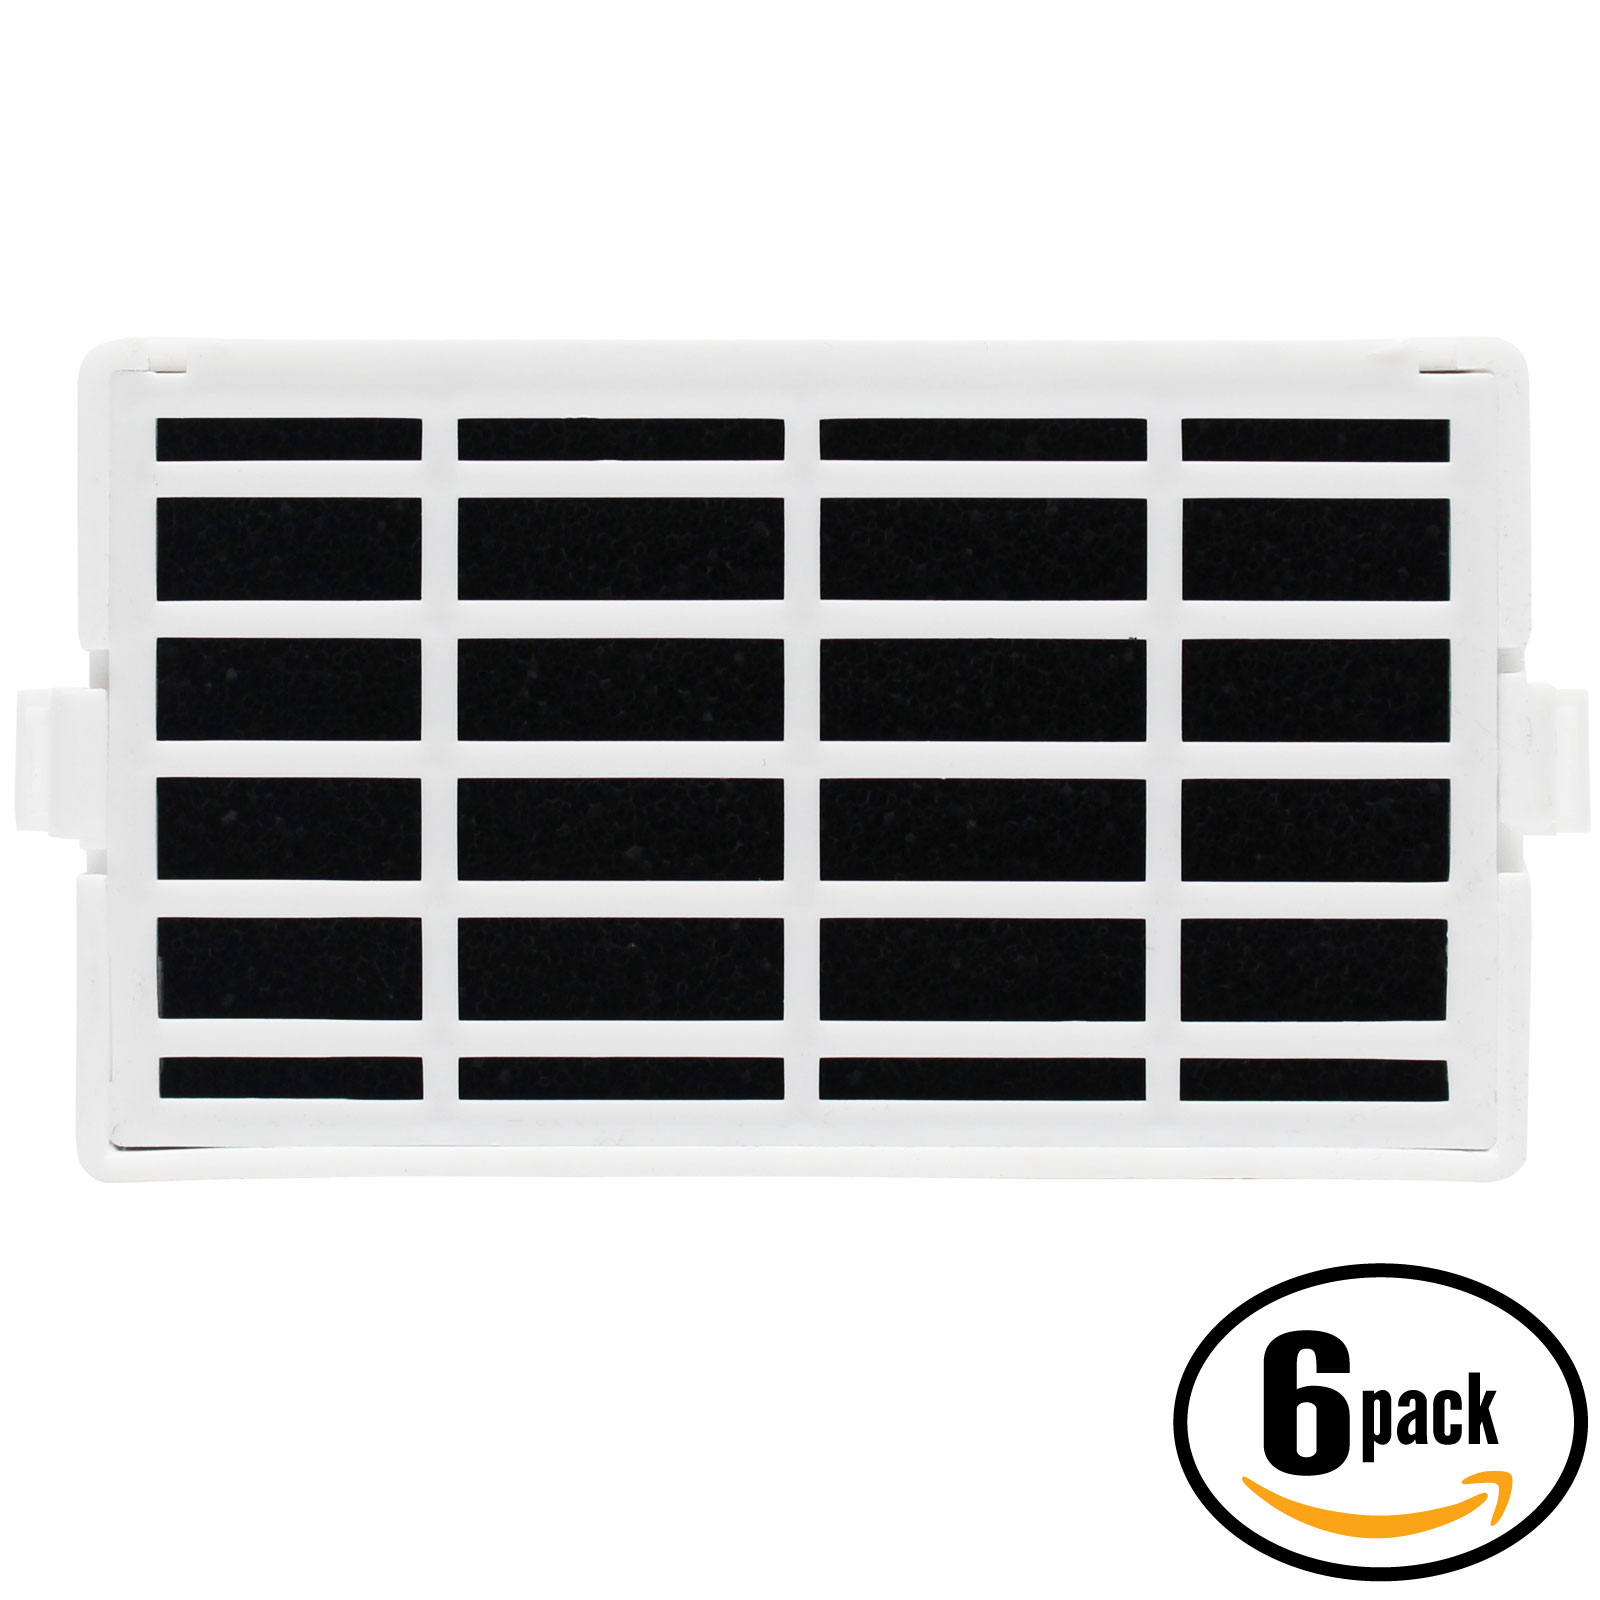 6-Pack Replacement Maytag MFX2876DRM02 Refrigerator Air Filter - Compatible Maytag W10311524, AIR1 Fridge Air Filter - image 4 de 4